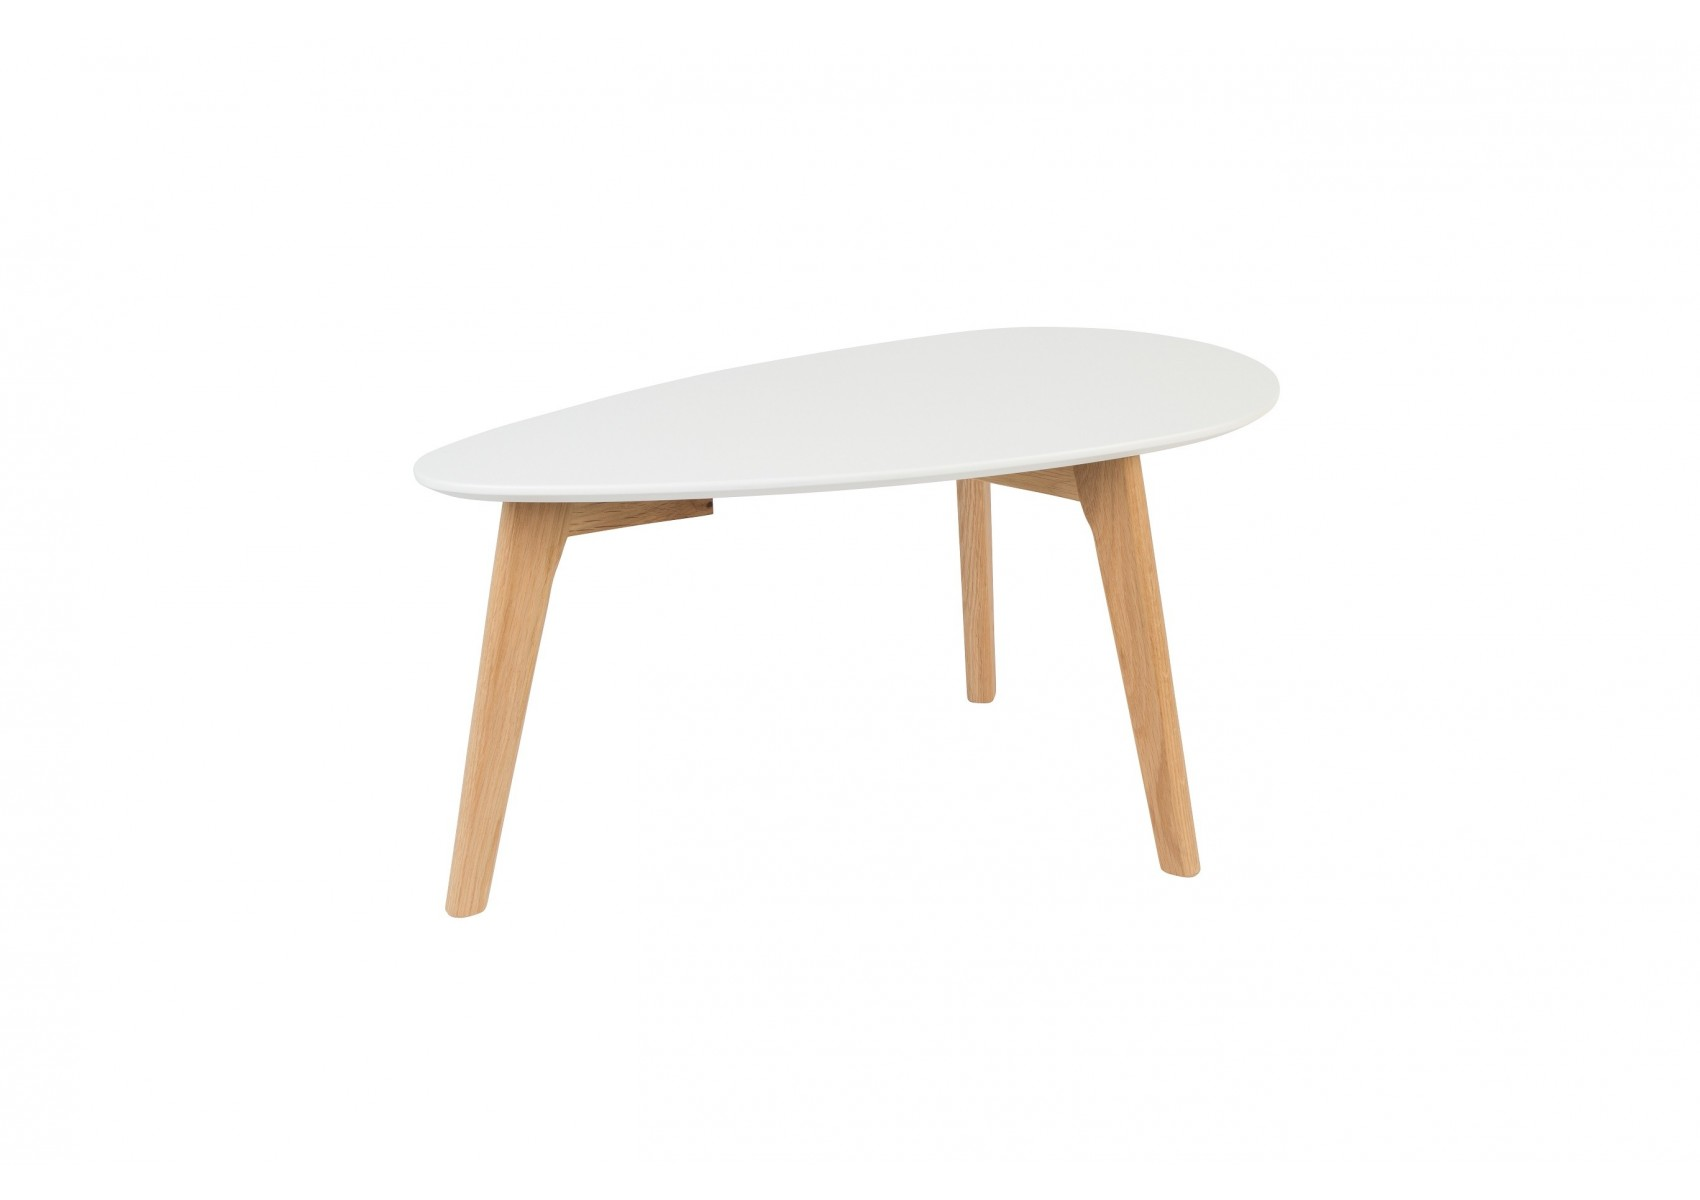 Tables basse scandinave drop laqu e blanche for Table basse scandinave blanche